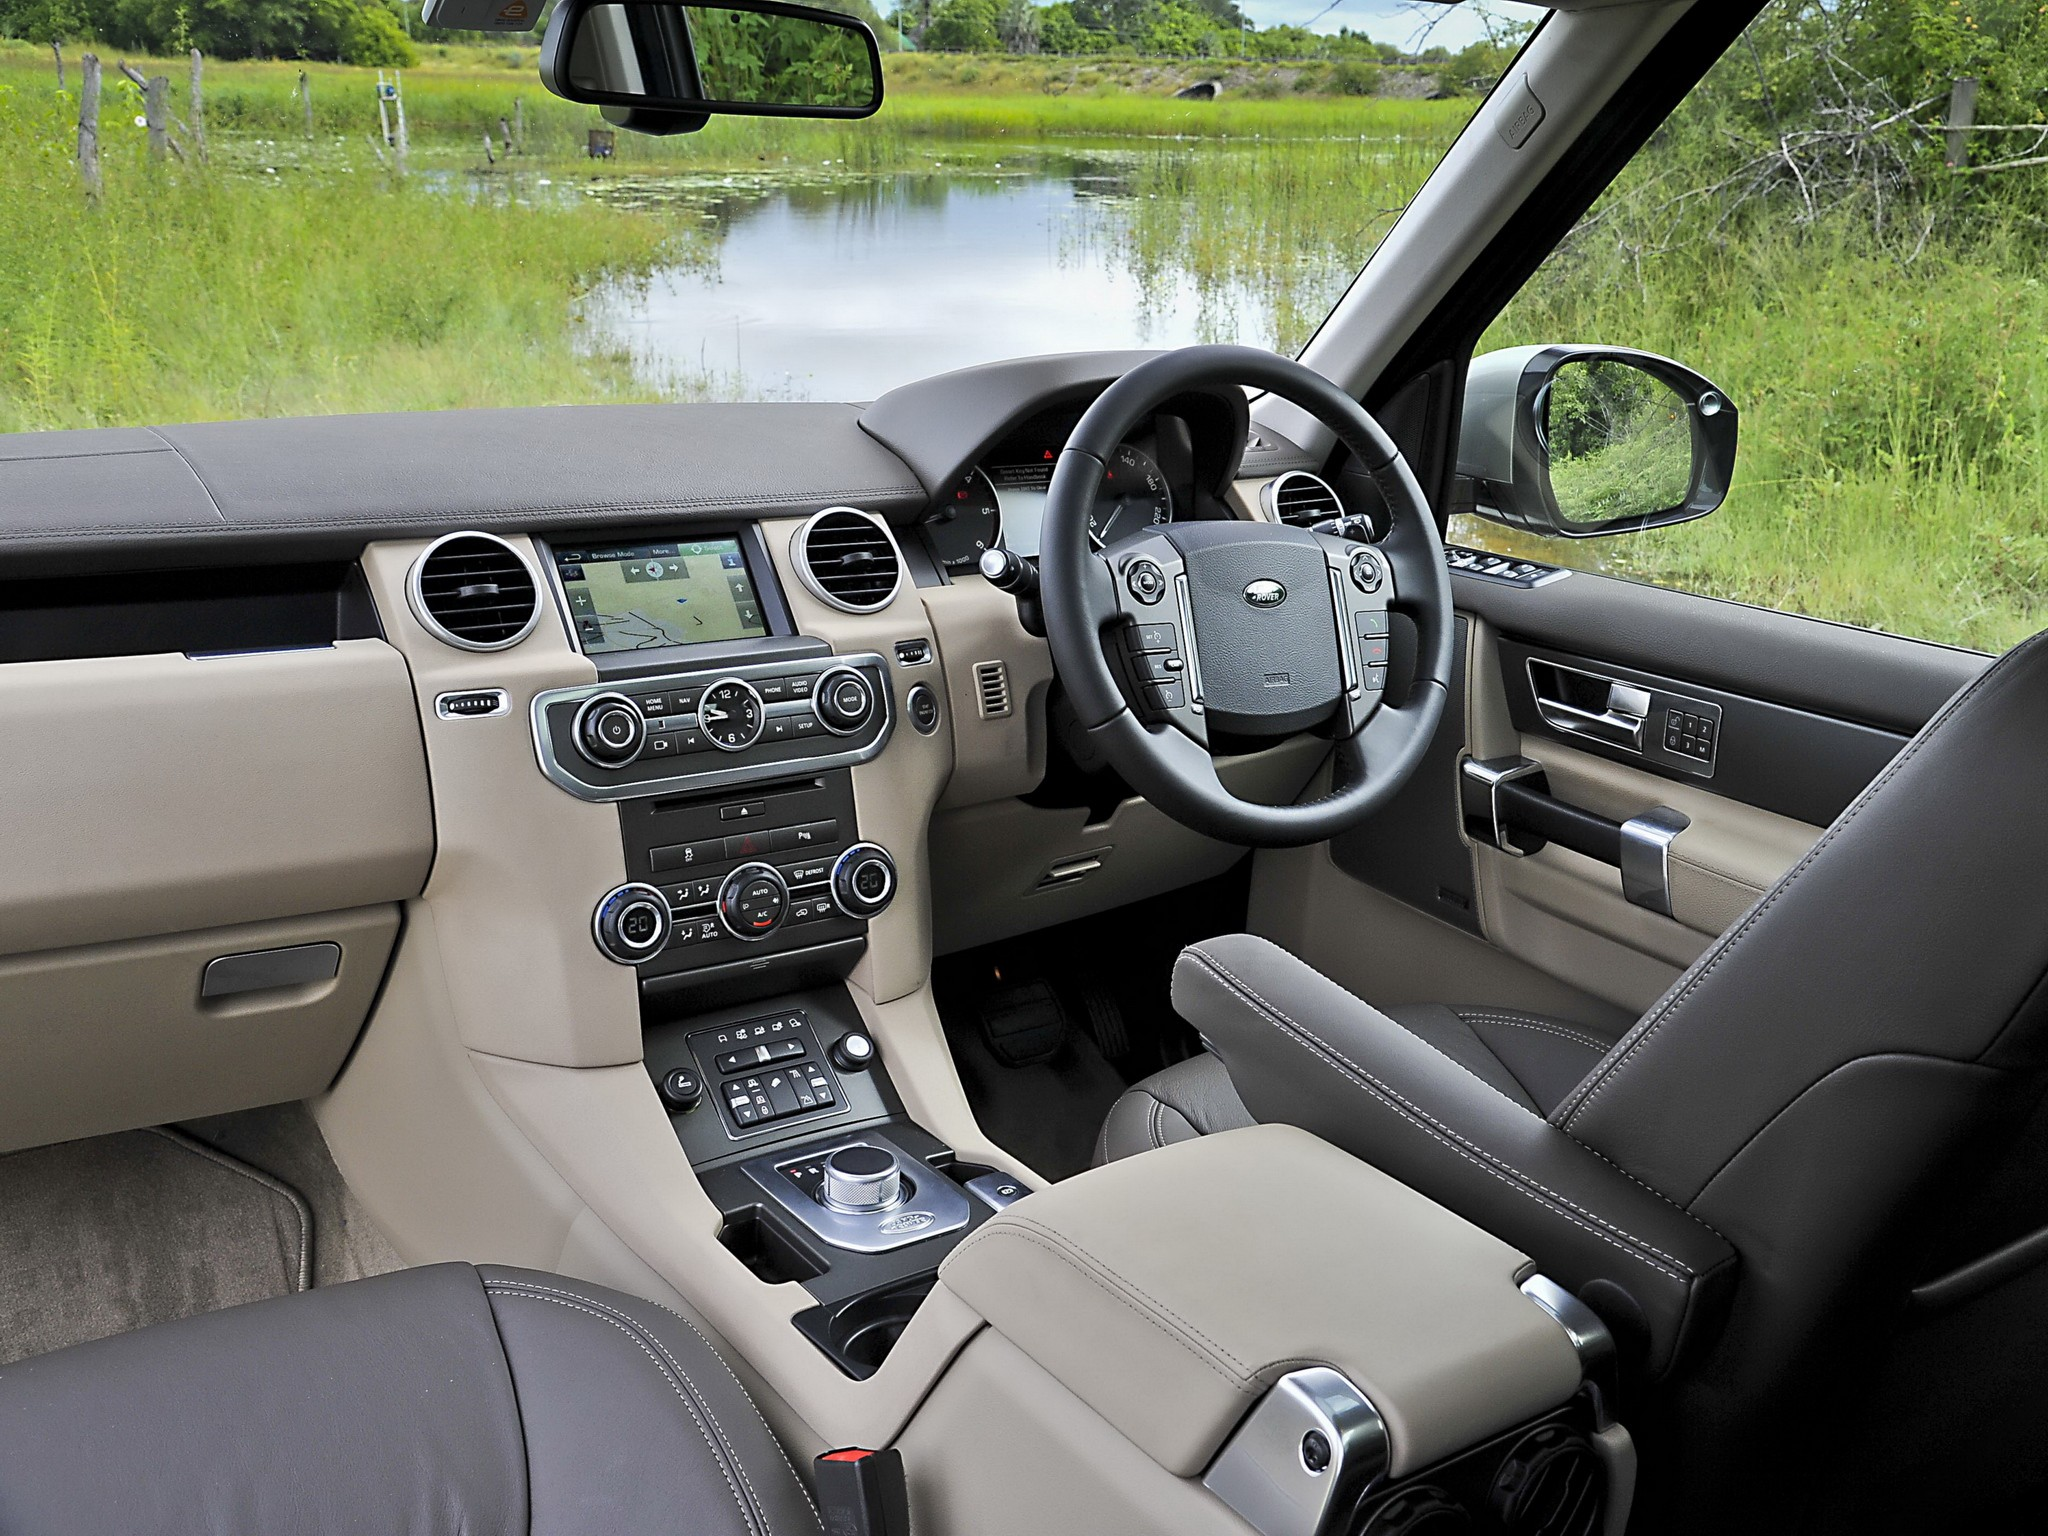 Land Rover Discovery 4 Interior Dimensions | www ...